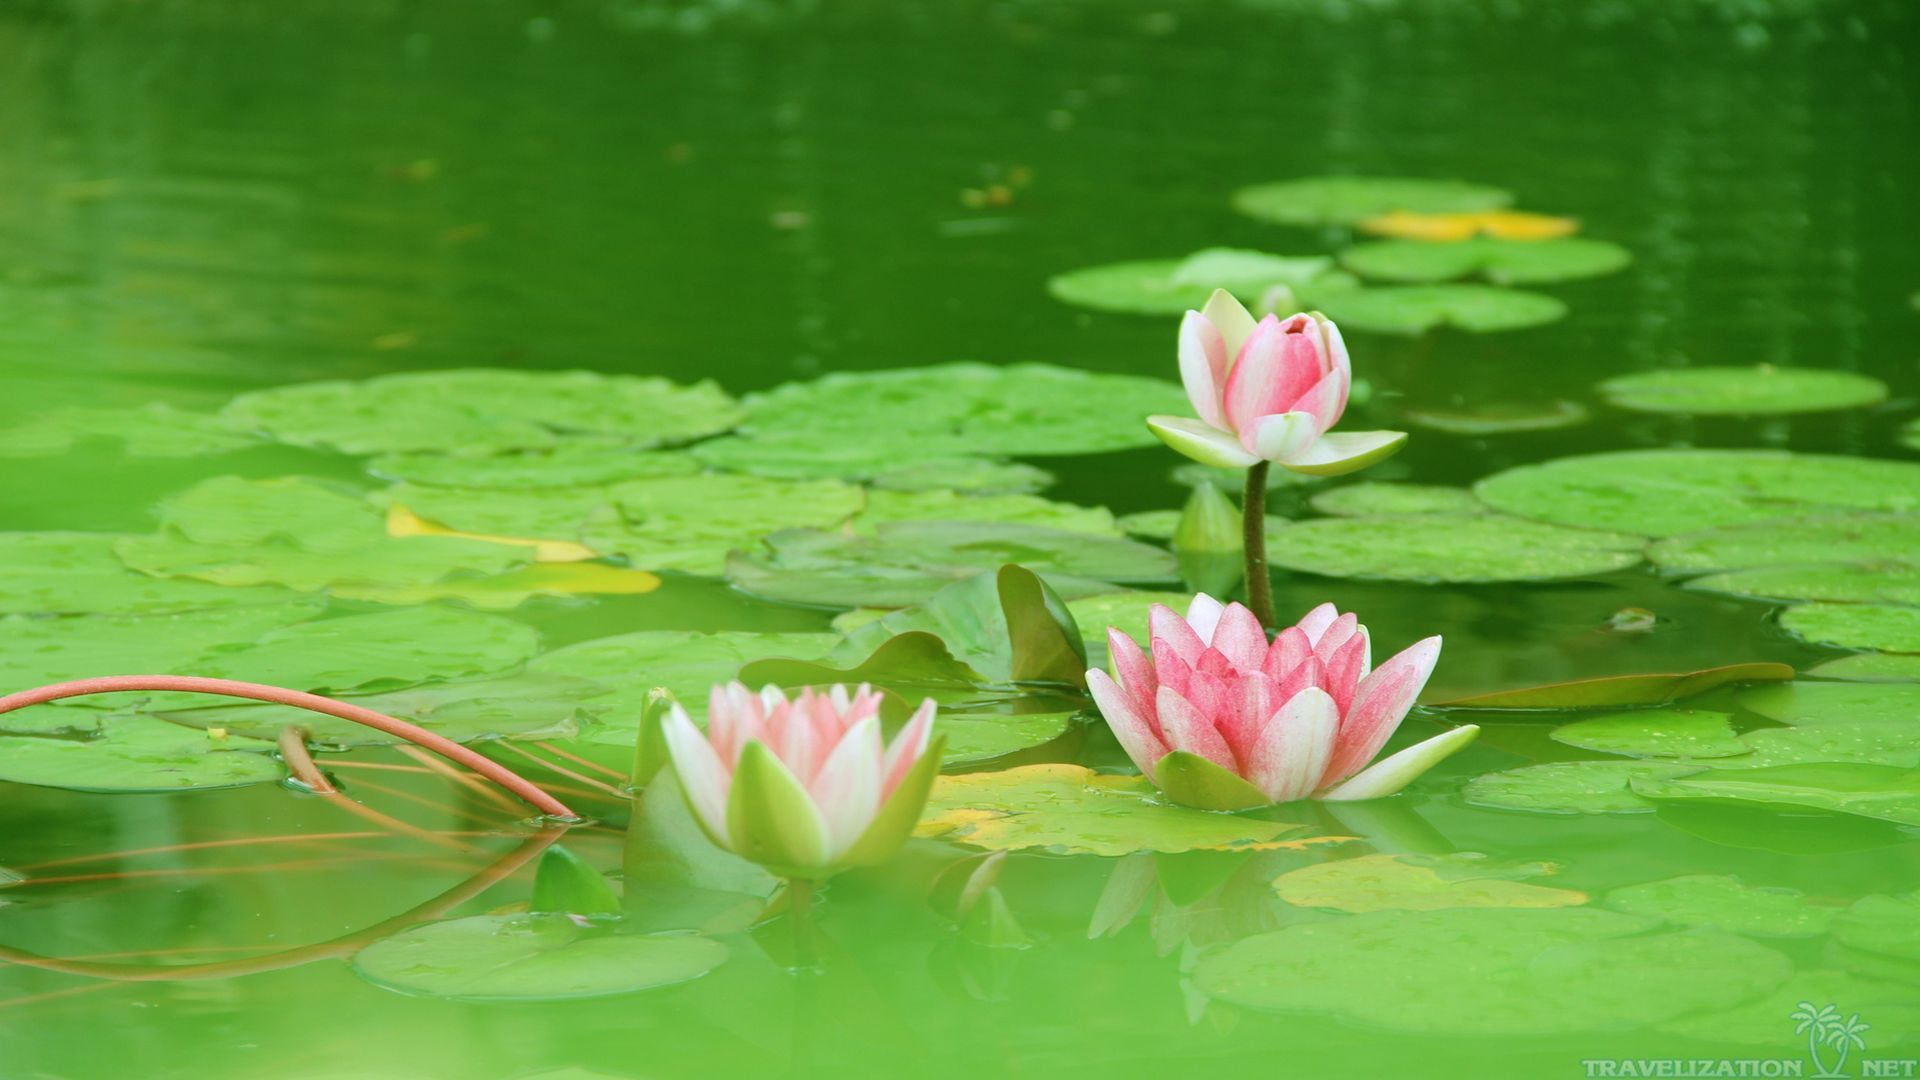 Wallpaper Lotus In Water For Android